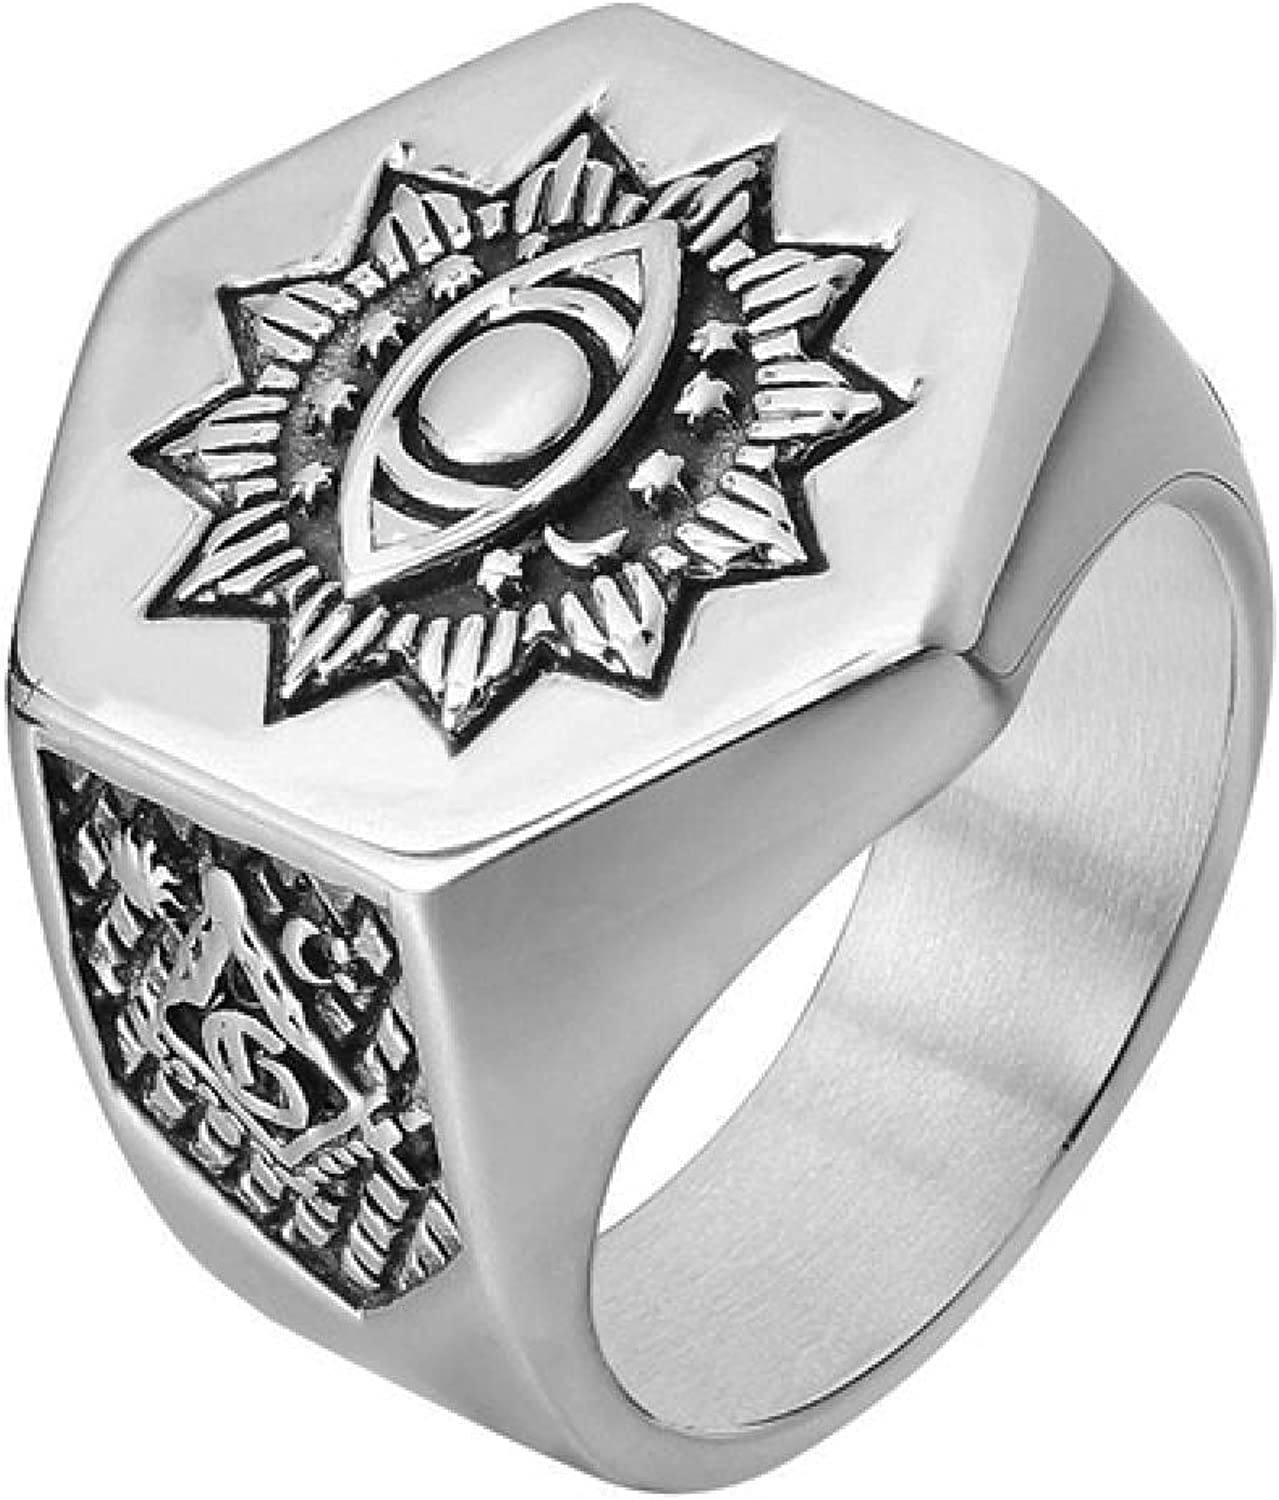 Eye SEAL limited product Ring Men's 316L Stainless Steel Rings Heavy Limited price sale Metal AG Masonic